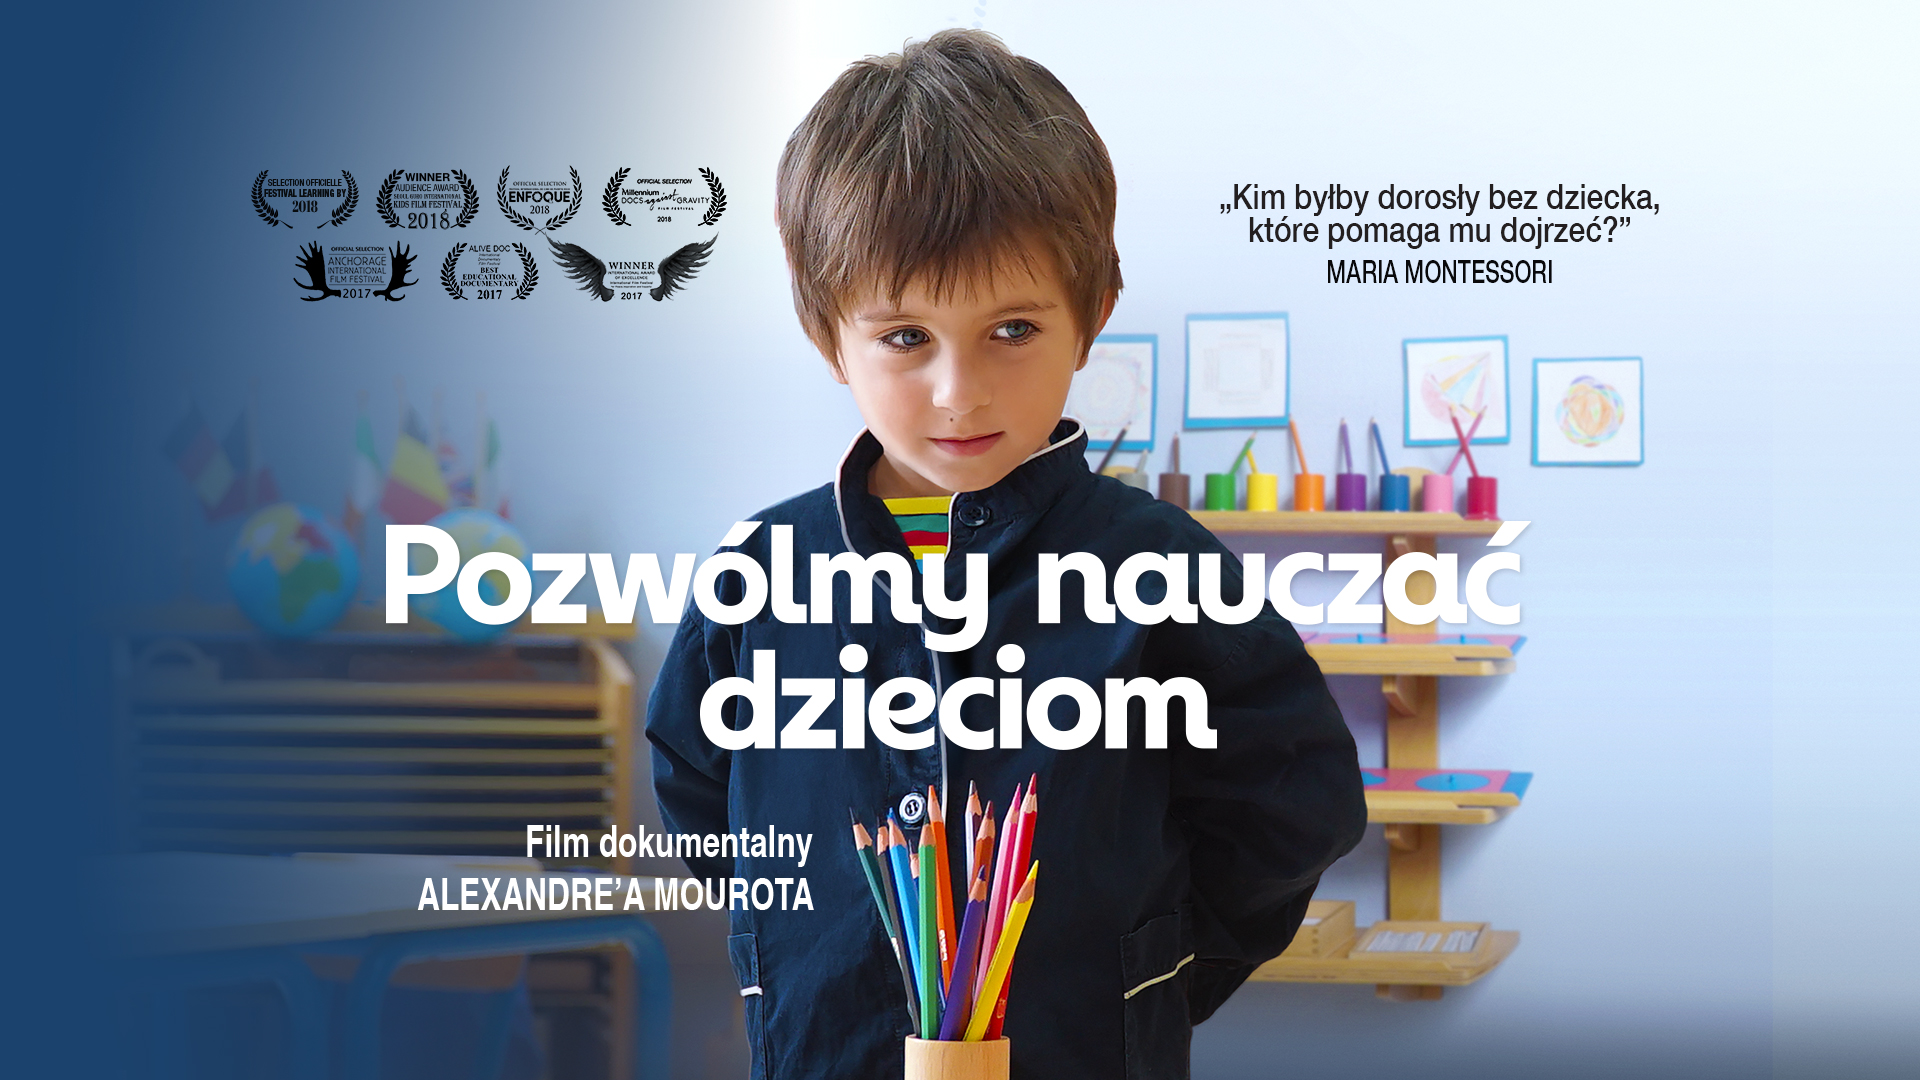 video preview of Pozwólmy nauczać dzieciom